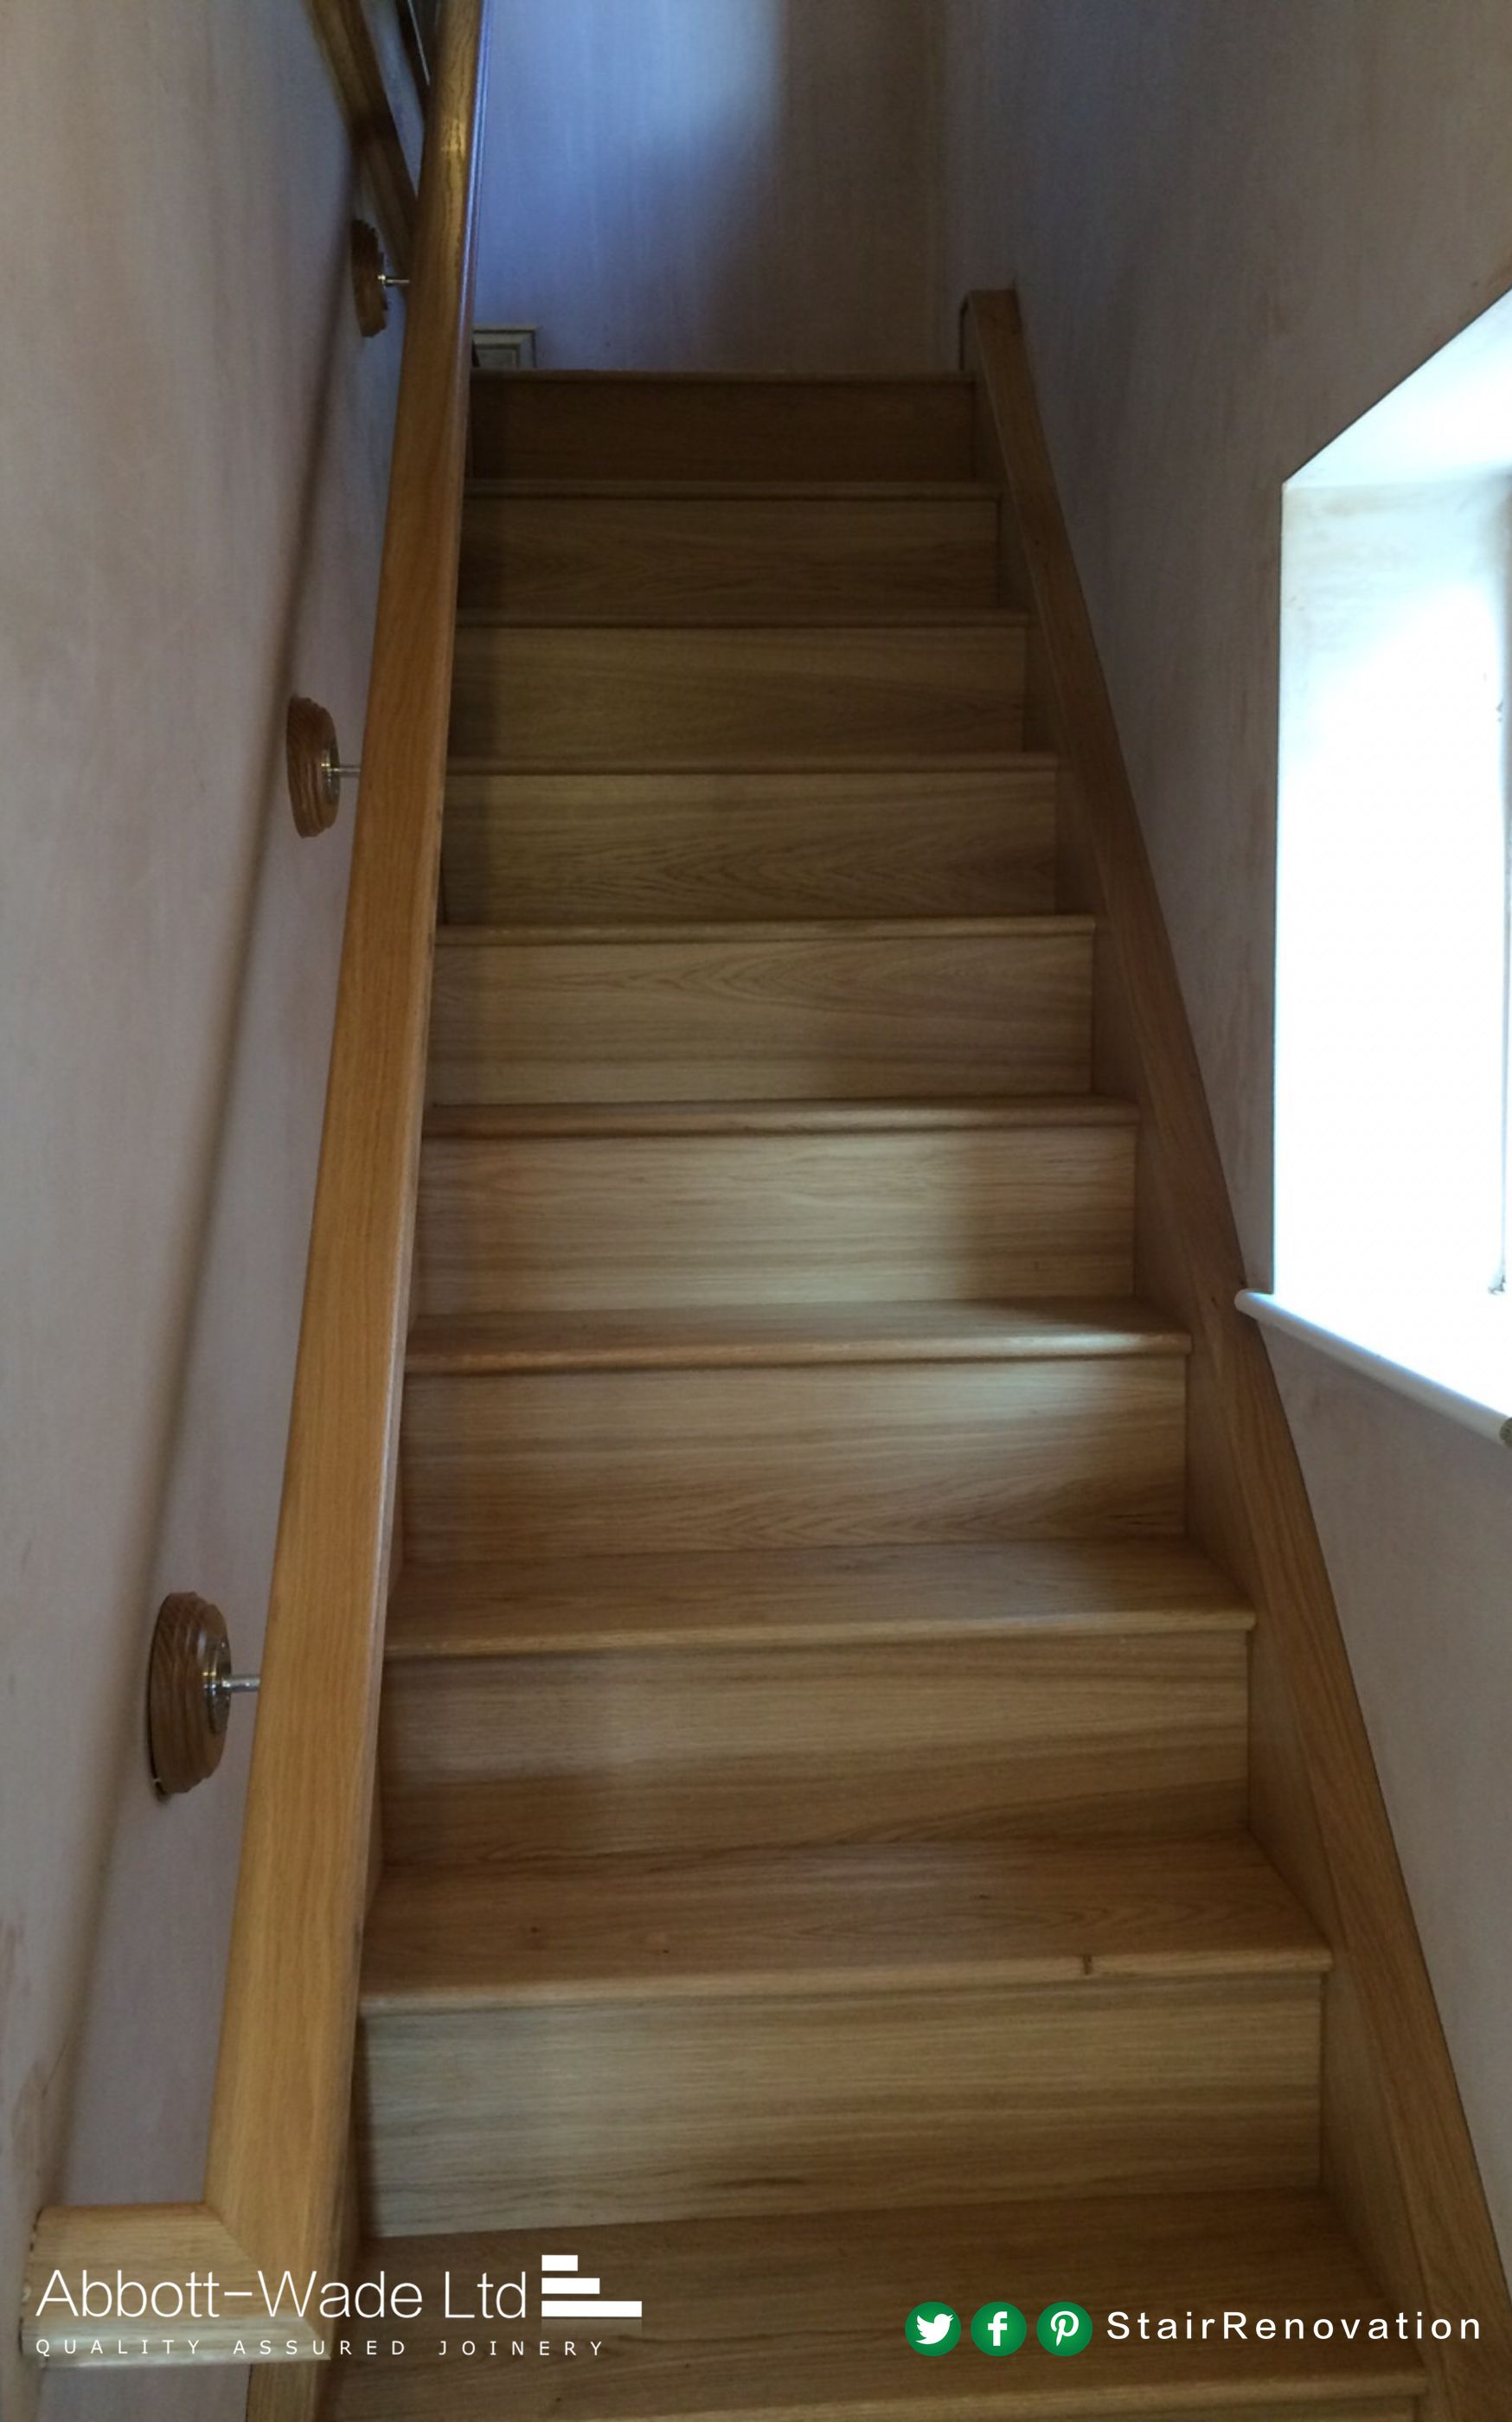 Our Wall Handrails Return Back Into The Wall So You Never See Any End Grain New Staircase Handrail Staircase